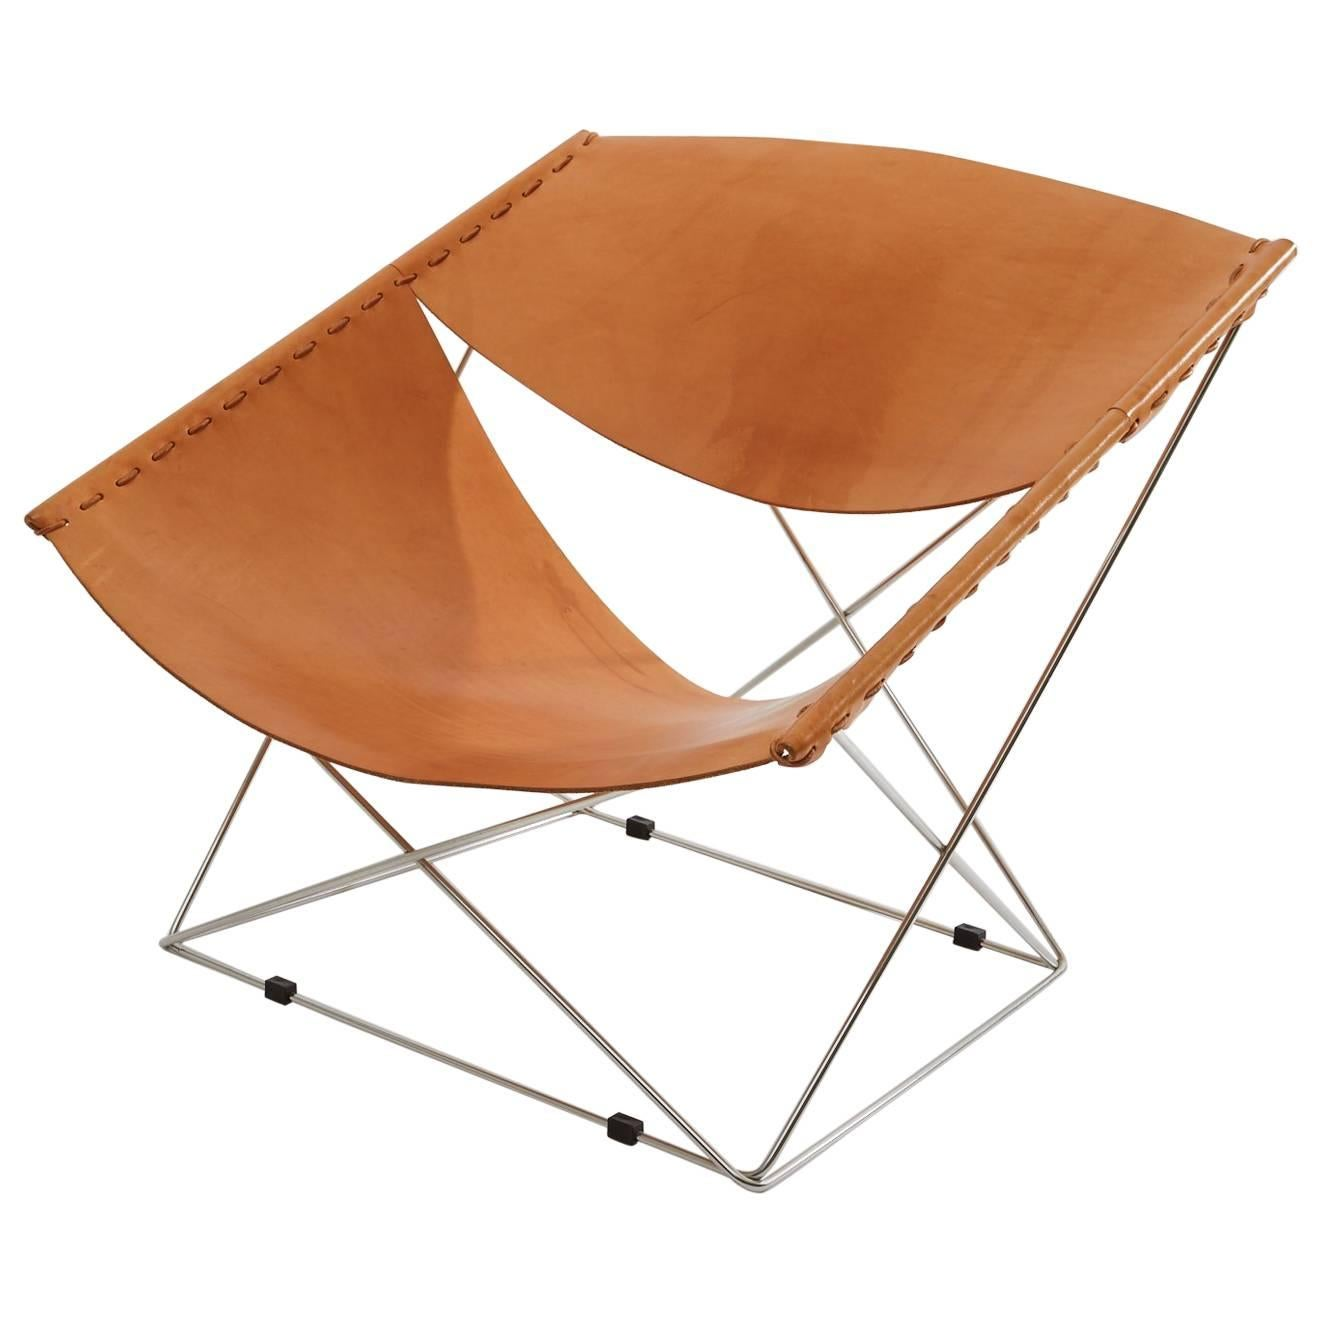 Delicieux Pierre Paulin Artifort Butterfly Lounge Chair In Natural Leather And Chrome